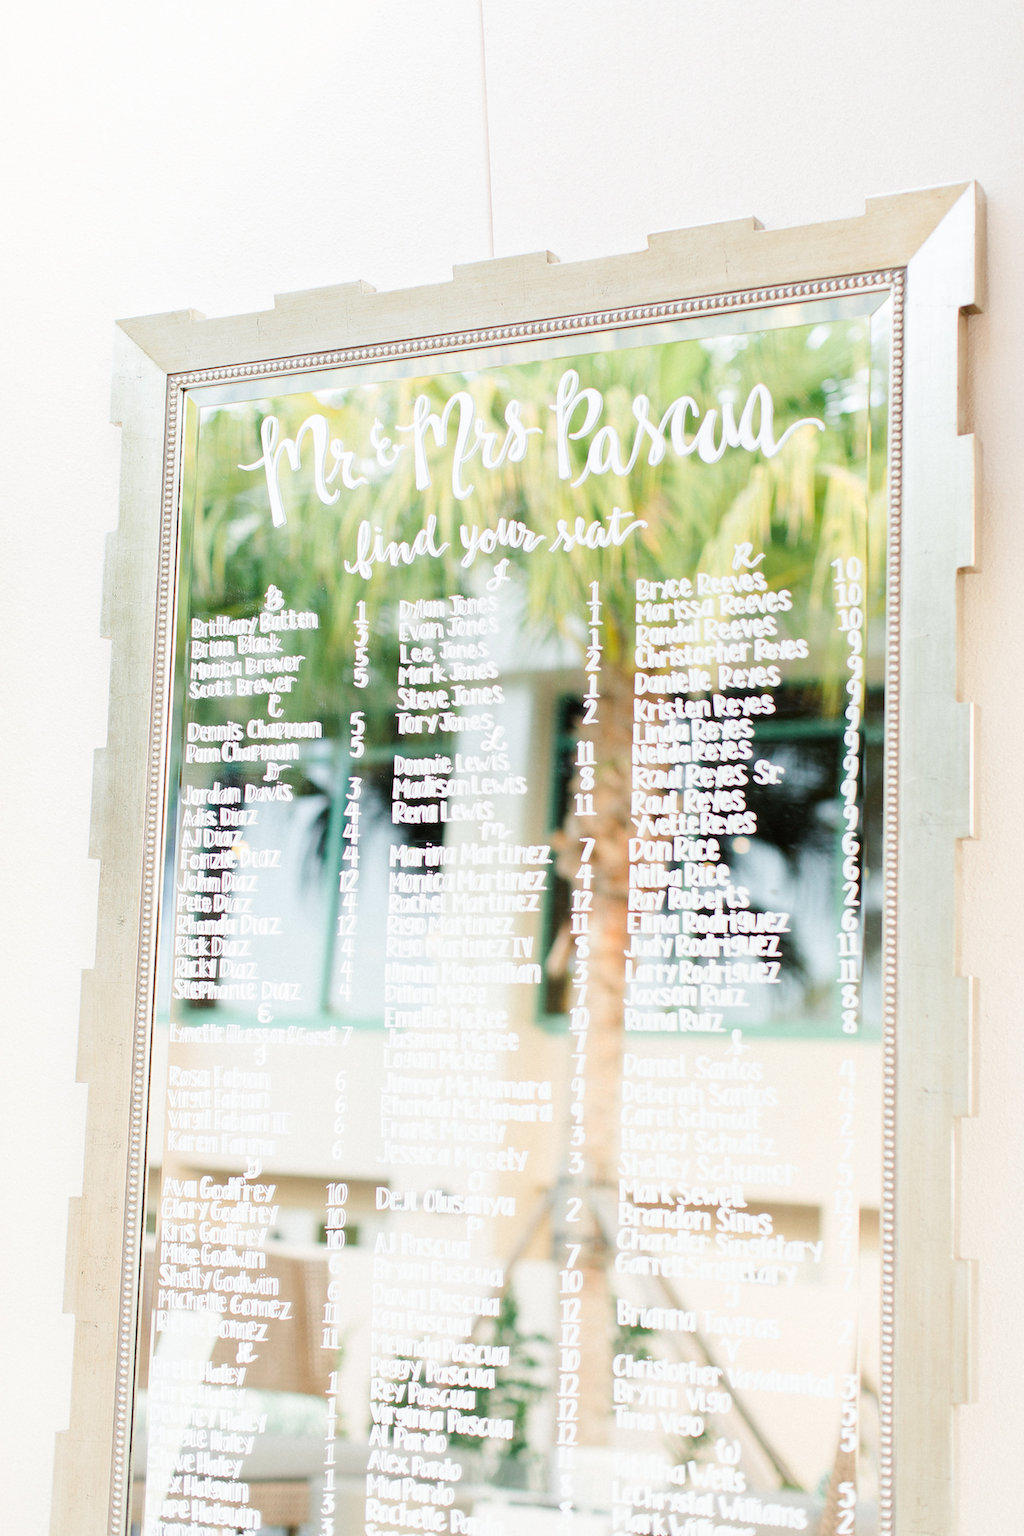 Elegant Wedding Seating Chart on Mirror with Gold Frame | St ...